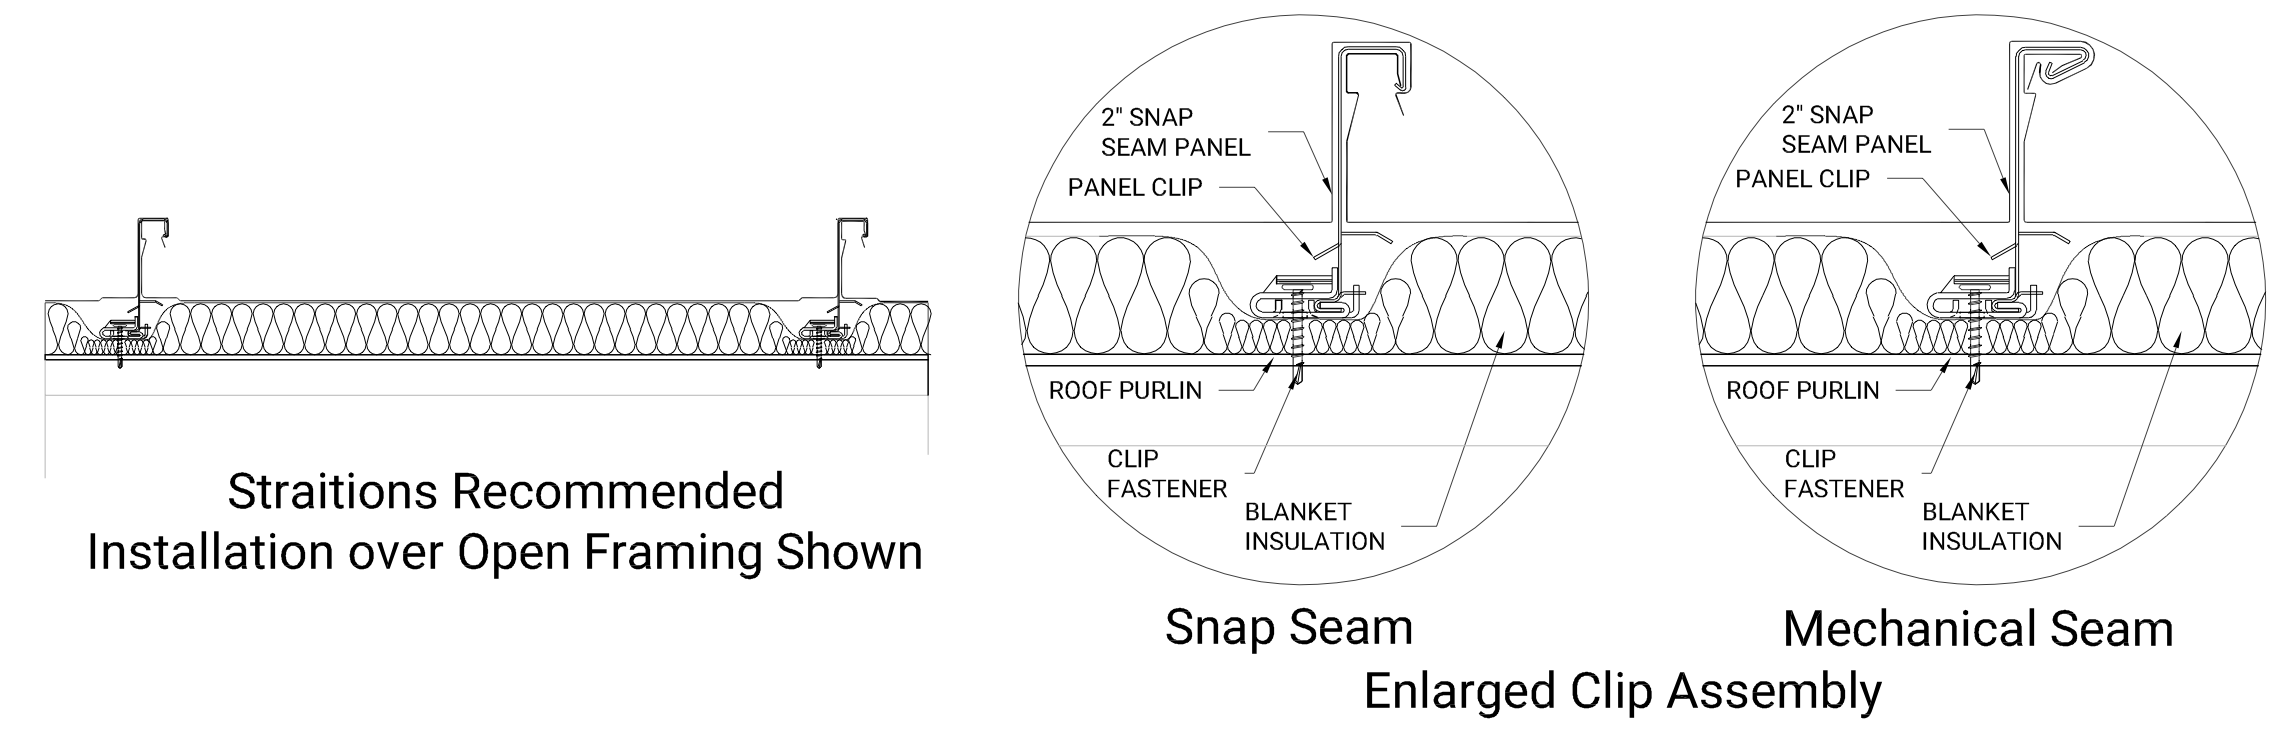 2in Snap Seam - Open Frame copy